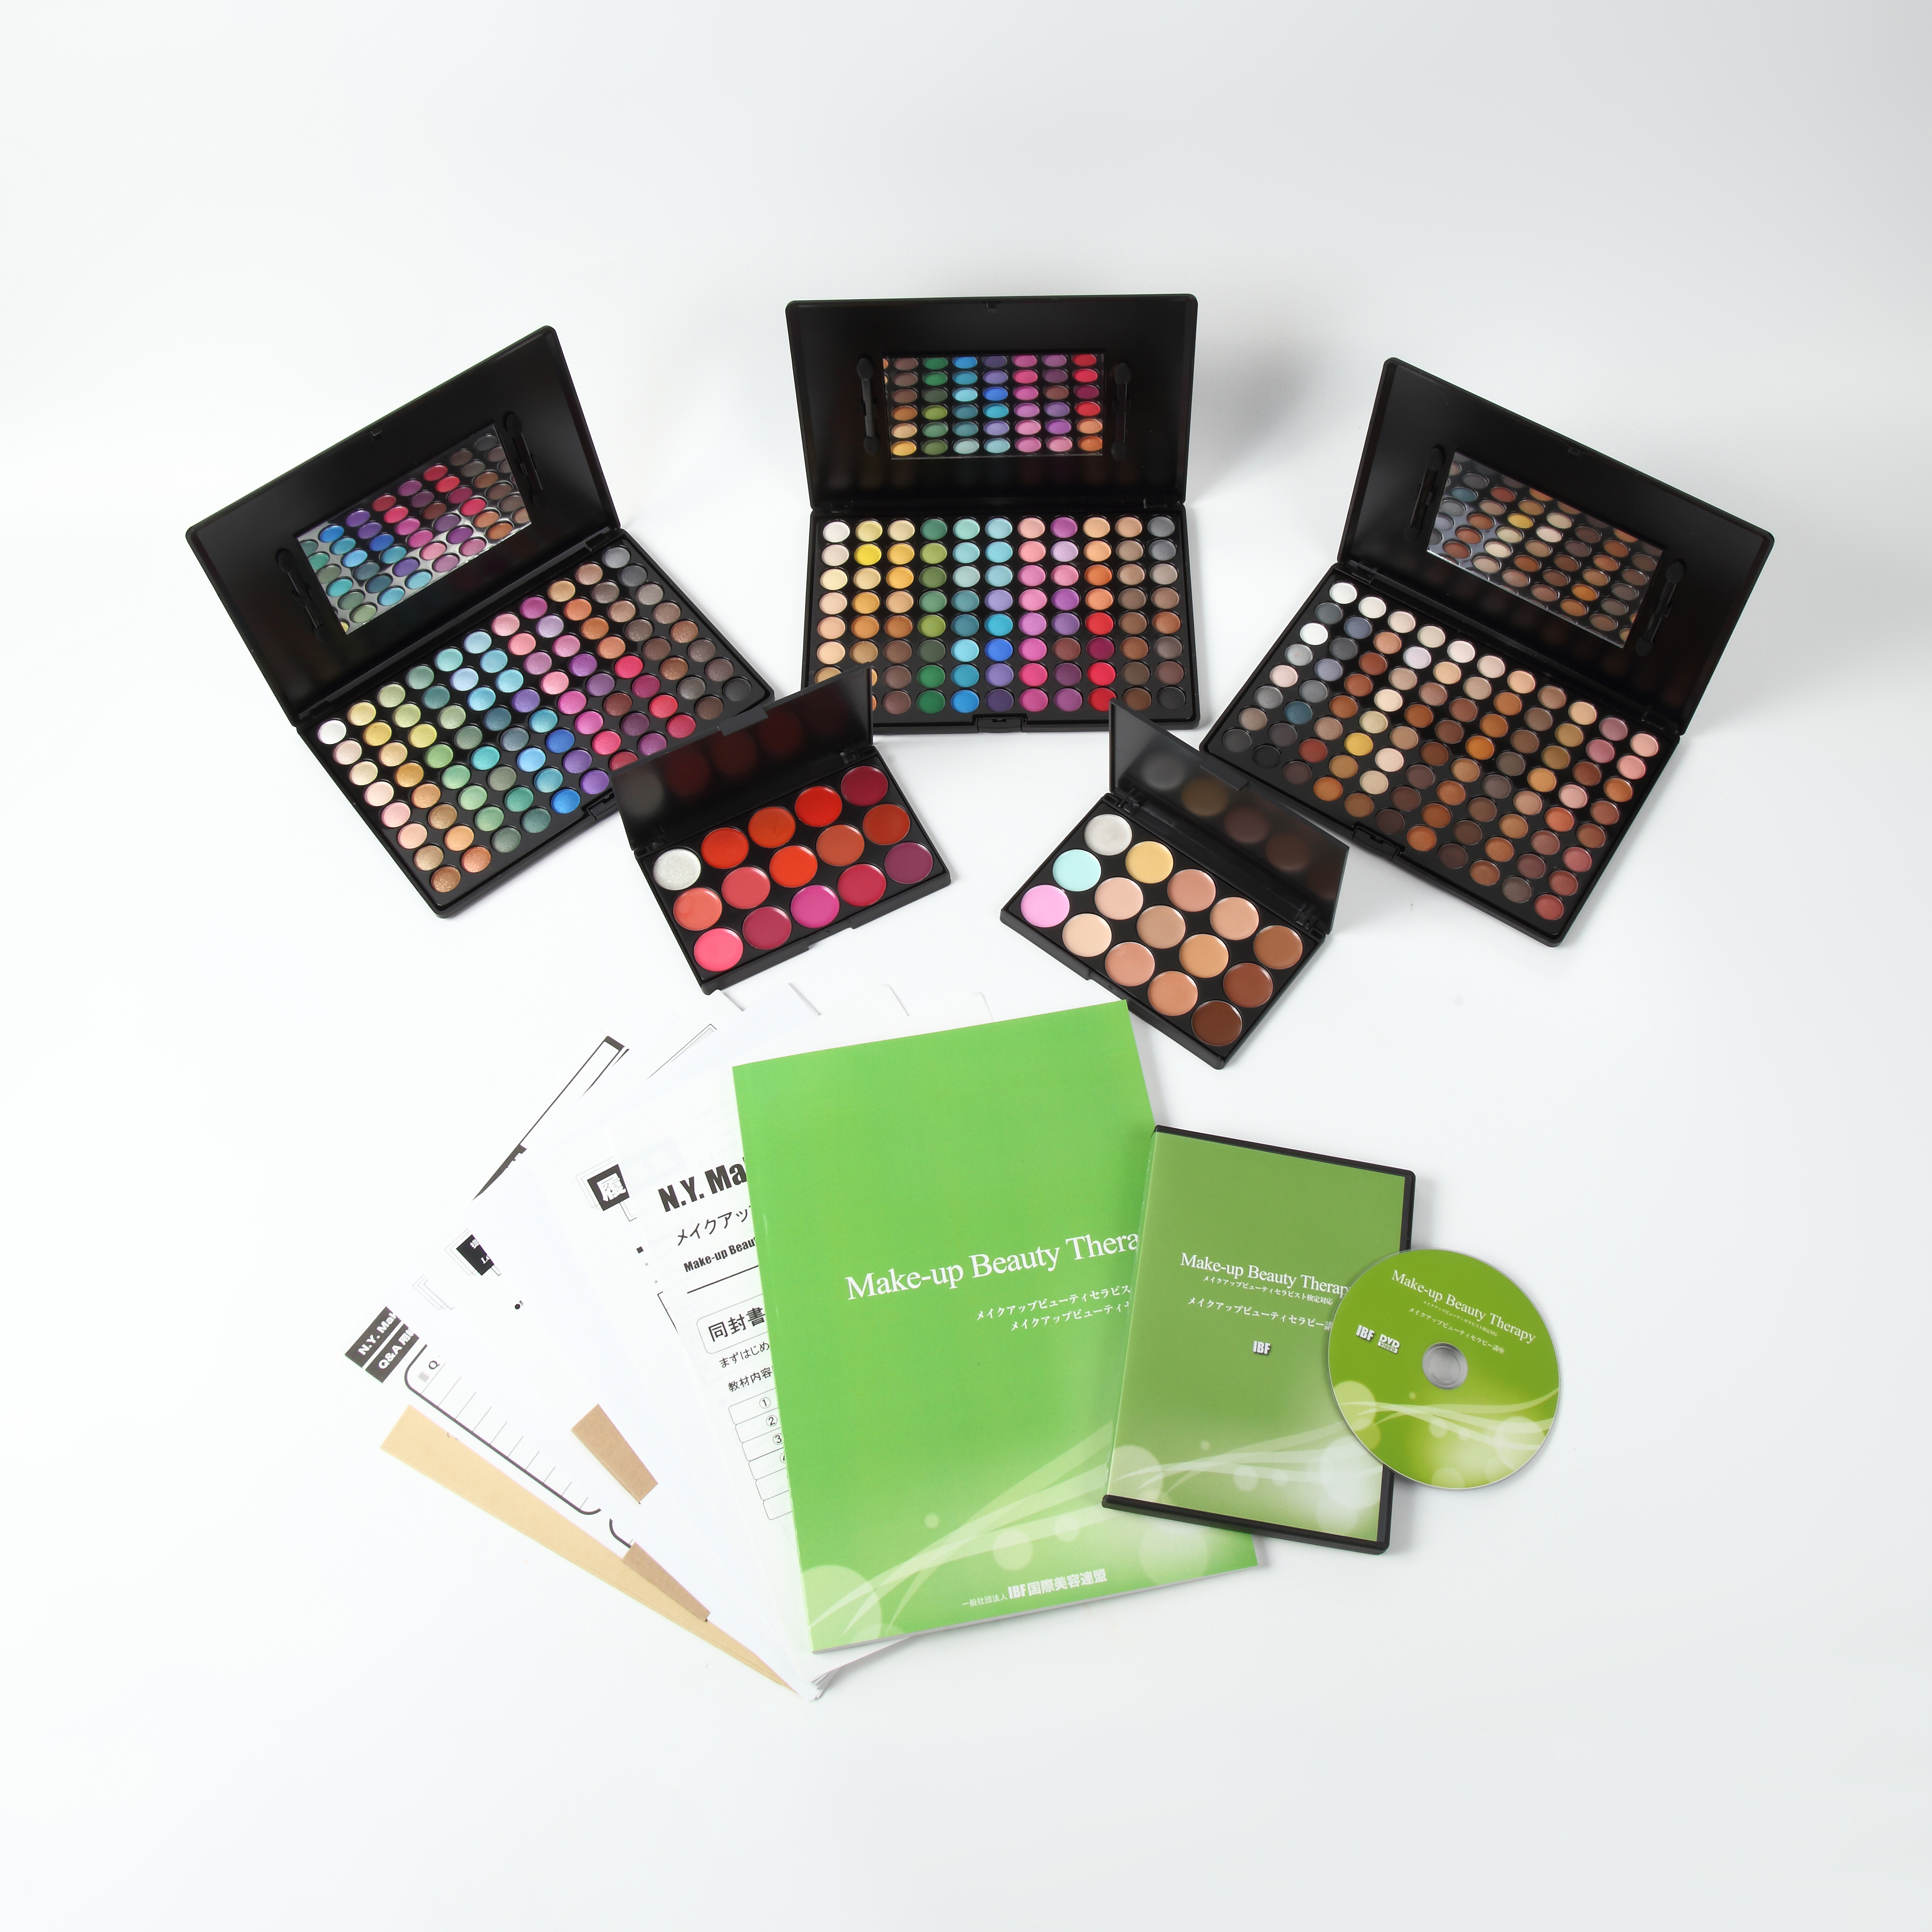 N.Y.Make-up Academy[IBF認定メイクアップビューティセラピー講座] の特徴 3